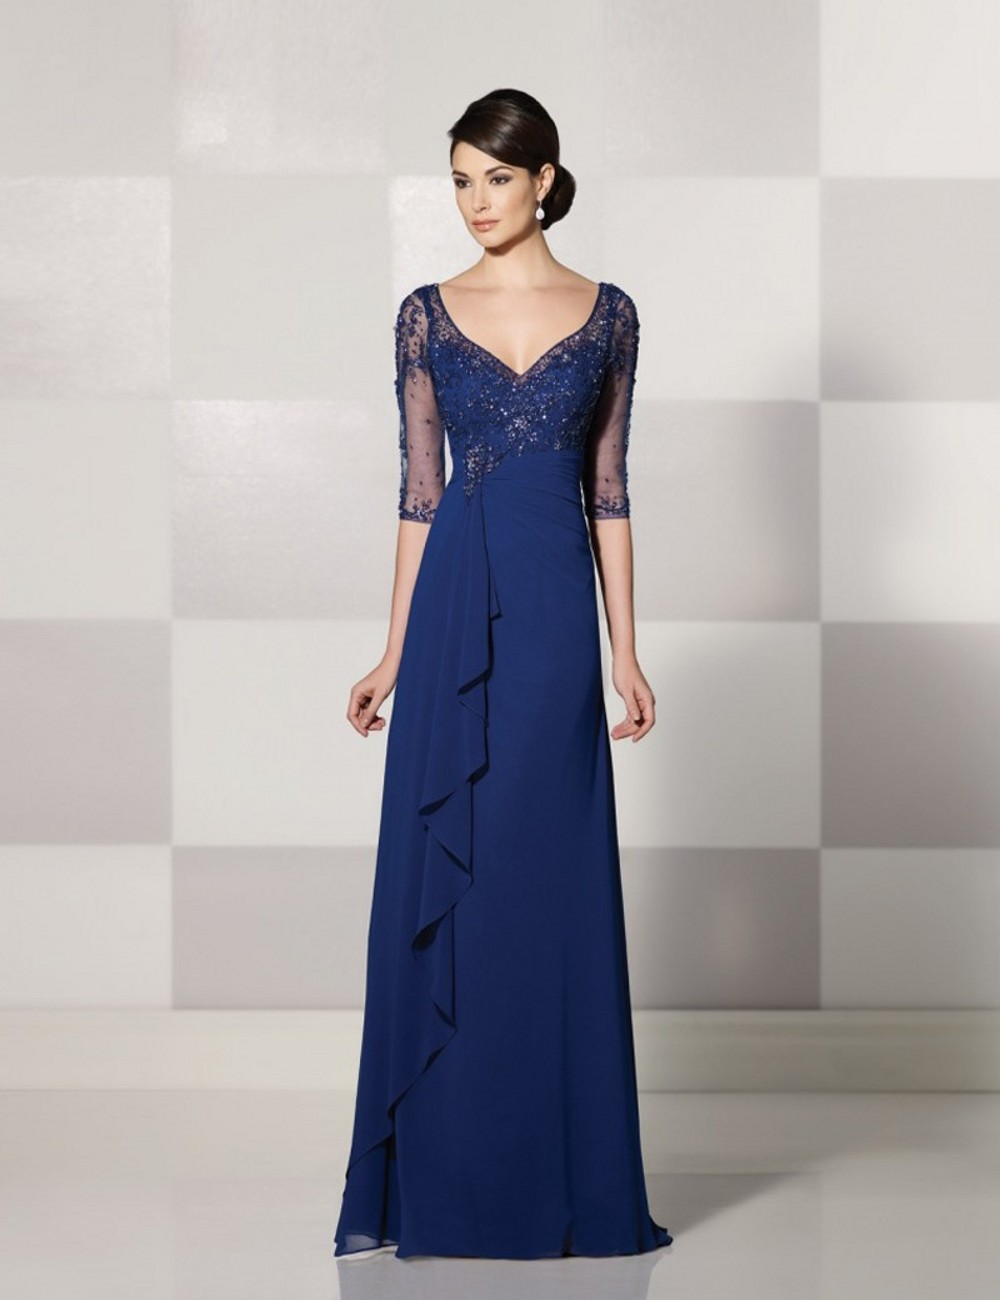 2017 Chiffon Navy Blue Mother Of The Bride Dresses V Neck